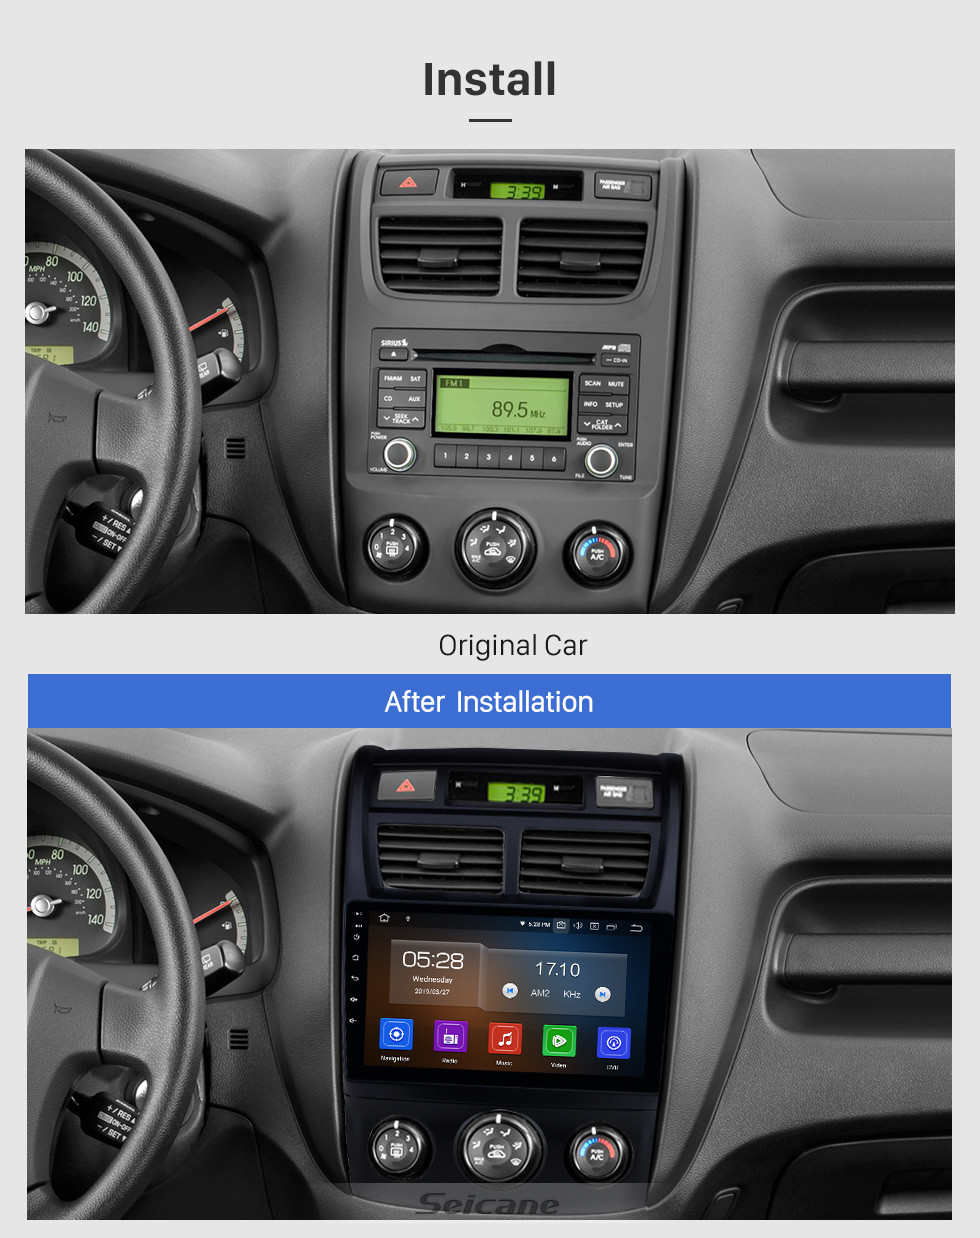 Seicane HD Touchscreen Android 10.0 9 Inch Radio for 2007-2017 KIA Sportage Auto A/C GPS Navigation Bluetooth music FM RDS WIFI USB support 4G Carplay DVD TPMS DVR OBD